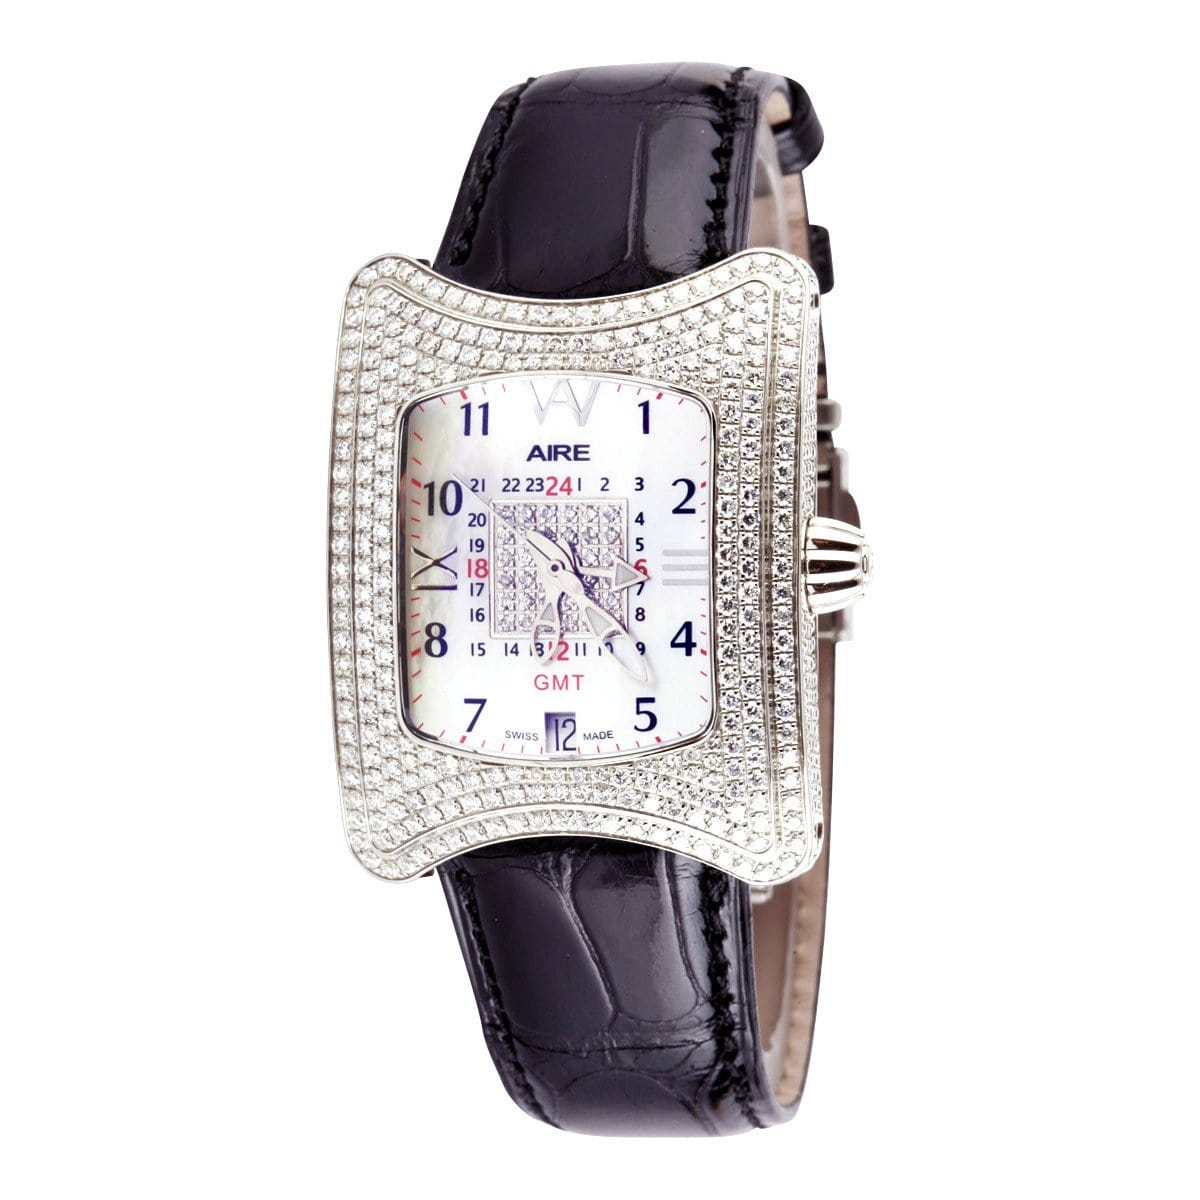 AIRE TRAVELER GMT WATCH - Chris Aire Fine Jewelry & Timepieces